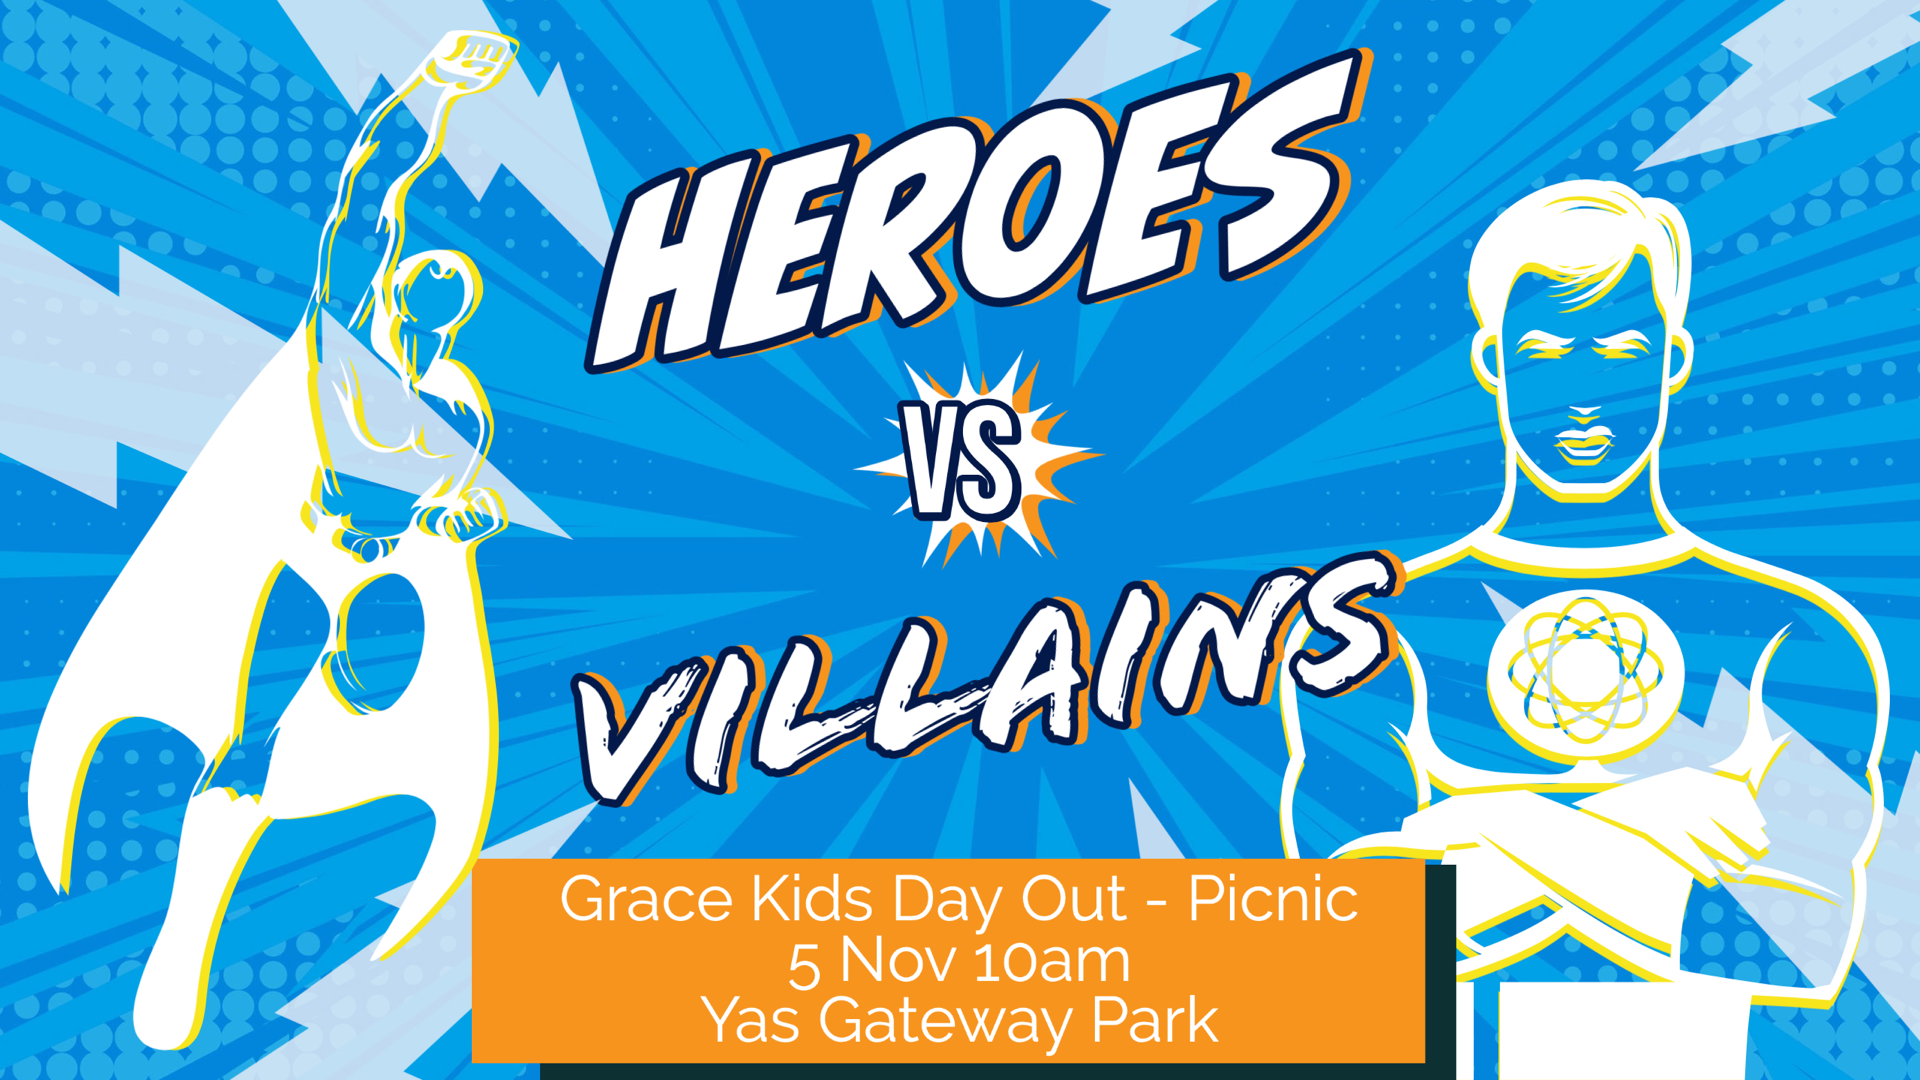 Grace Kids Day Out image